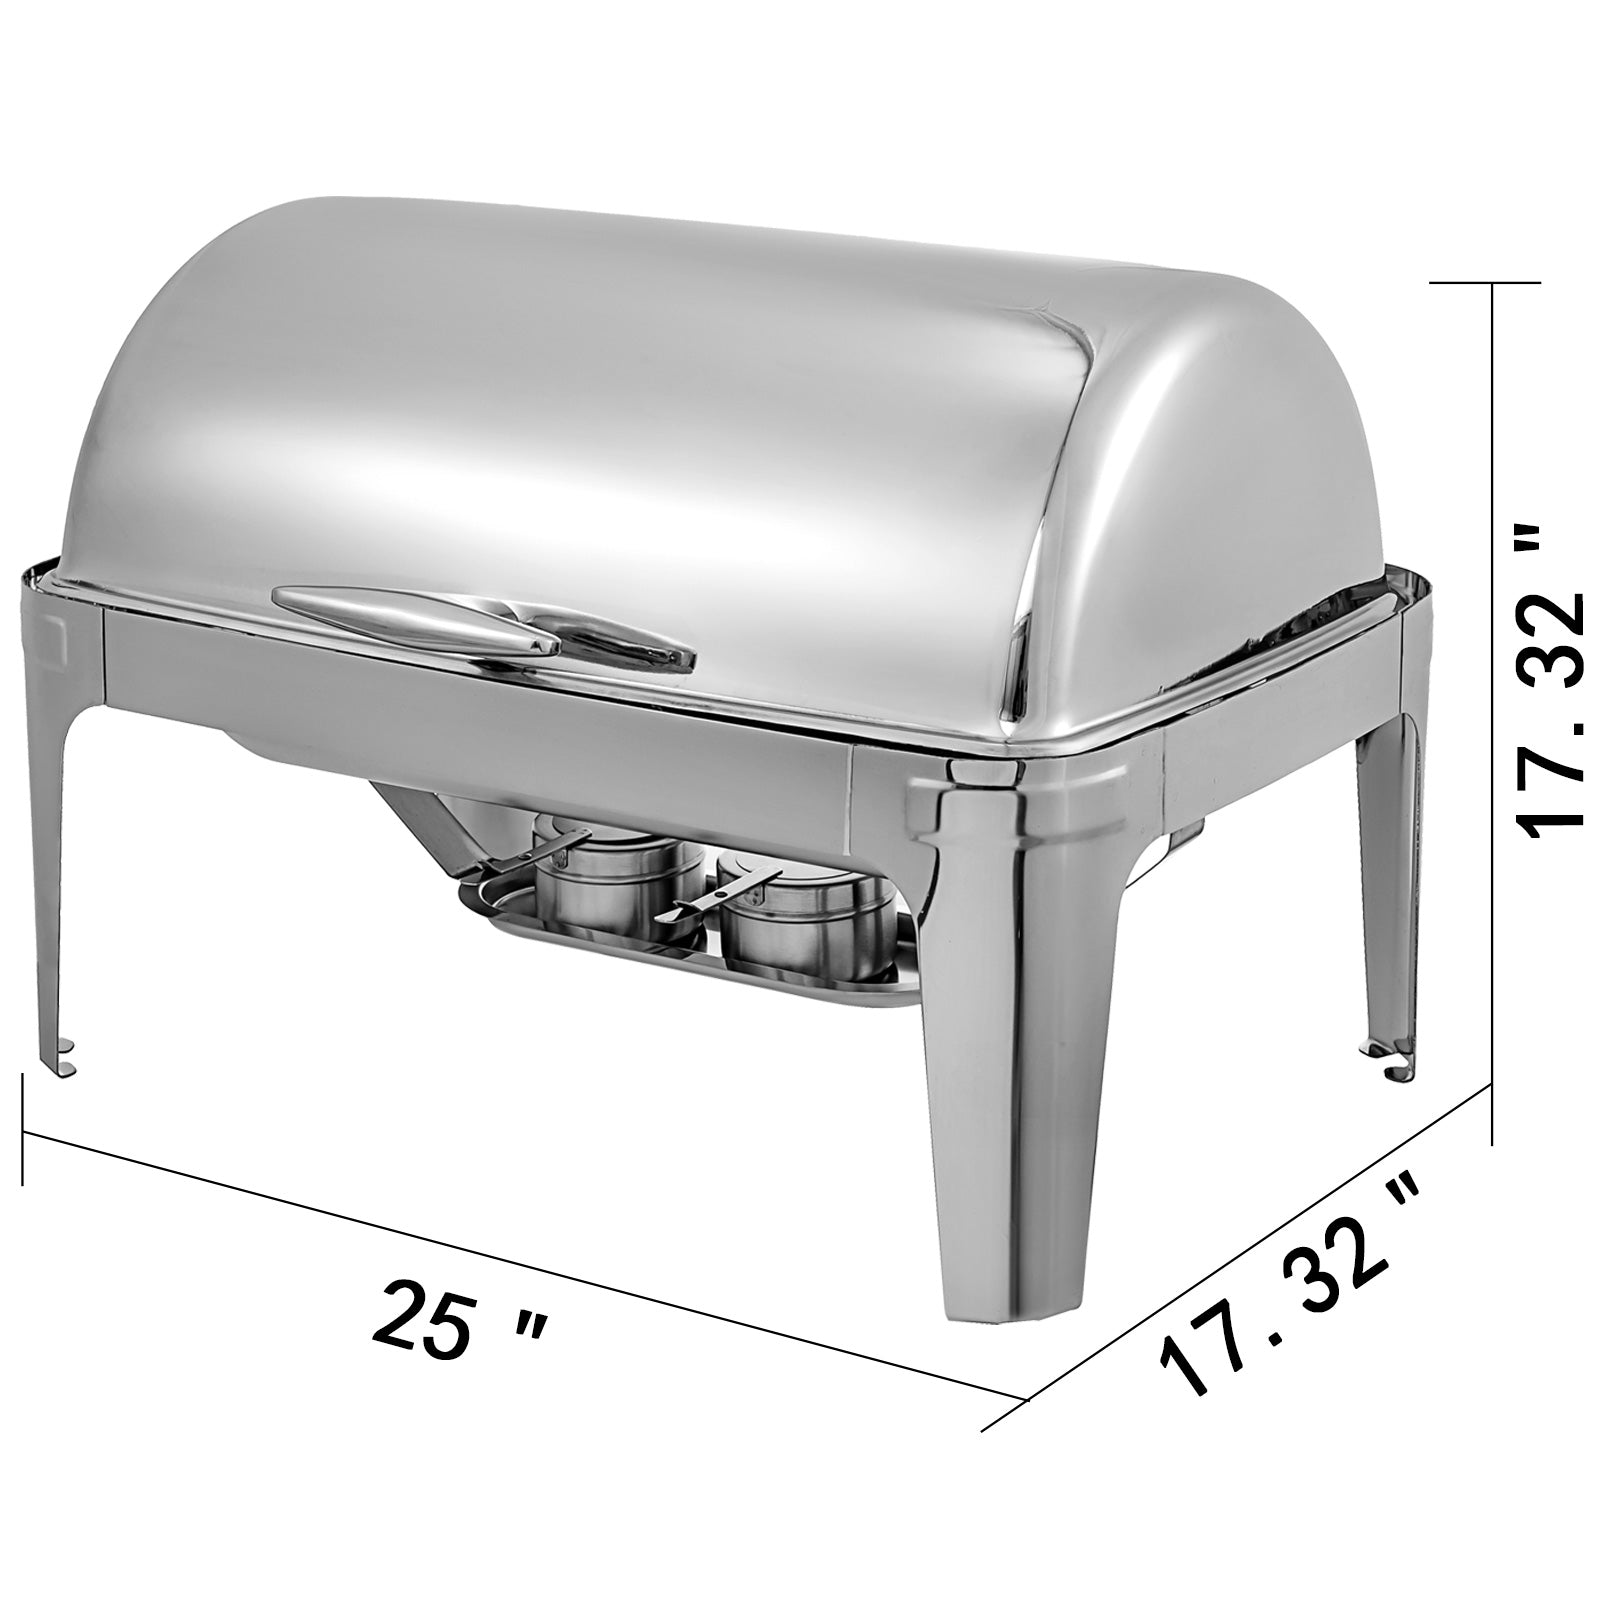 2pack Chafer Chafing Dish Roll Top Chafing Dish Stainless Steel Rectangular